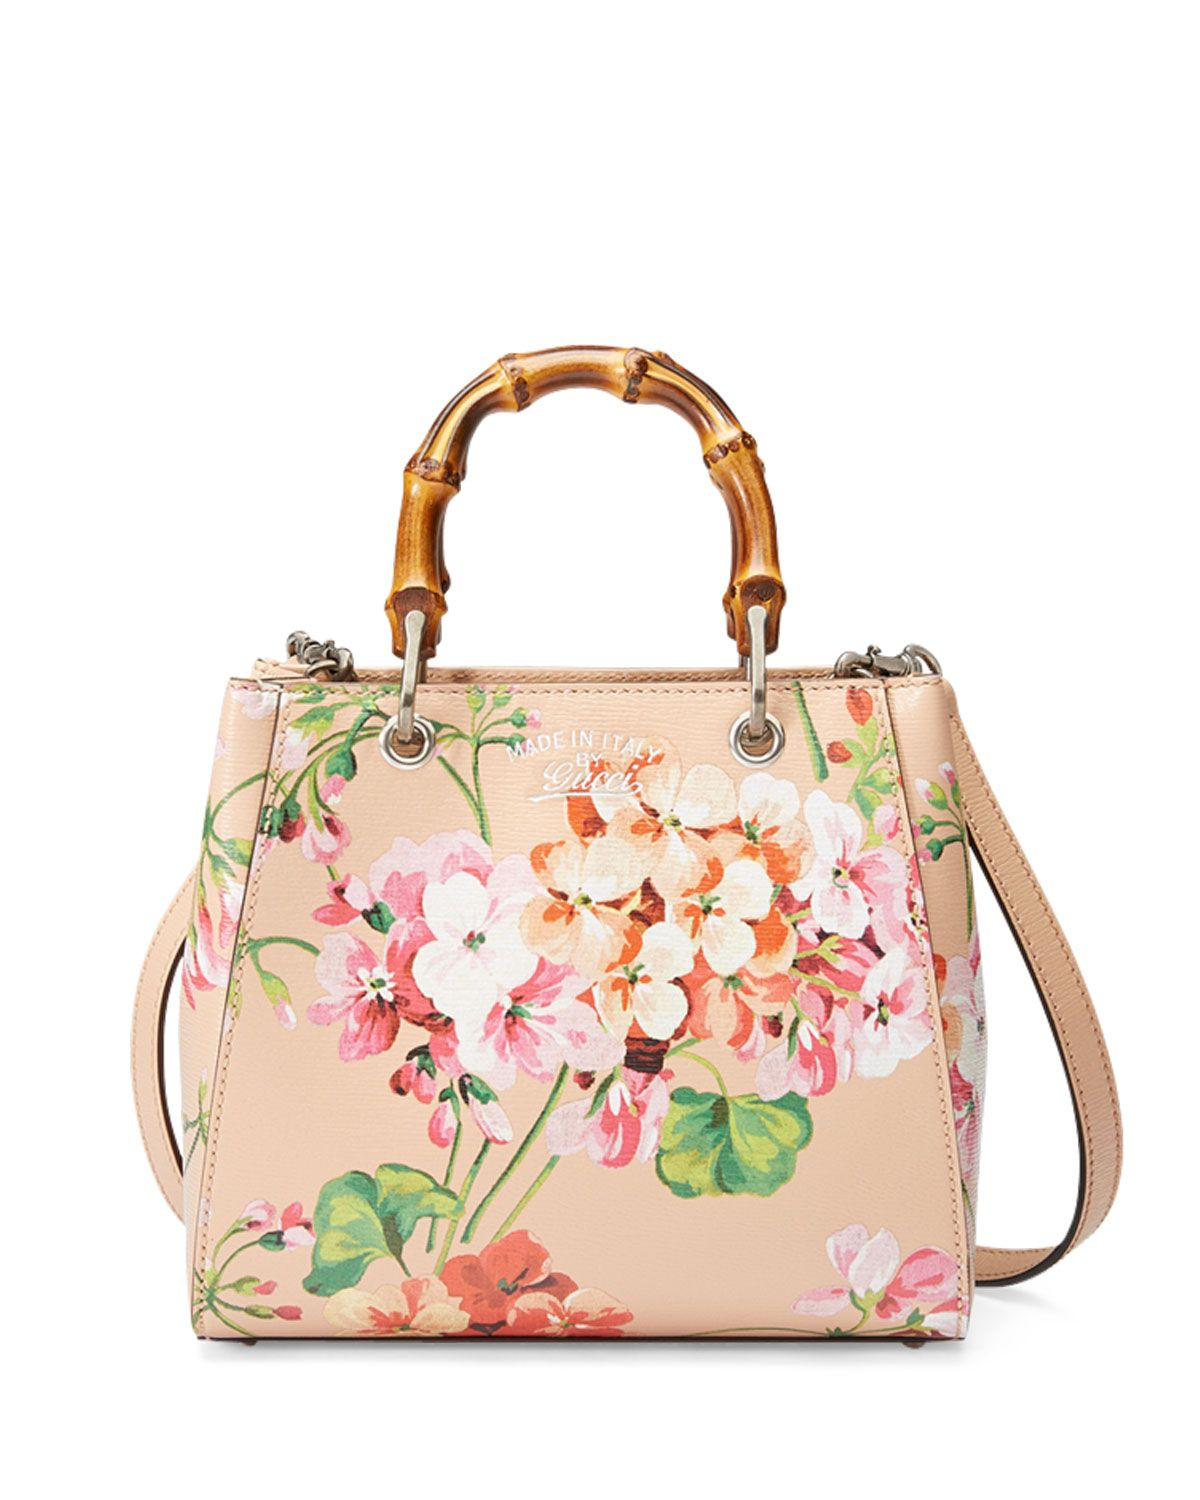 36b9947fb5fb Gucci Bamboo Shopper Mini Blooms Crossbody Bag, Nude, Women s, Nude With  Blooms